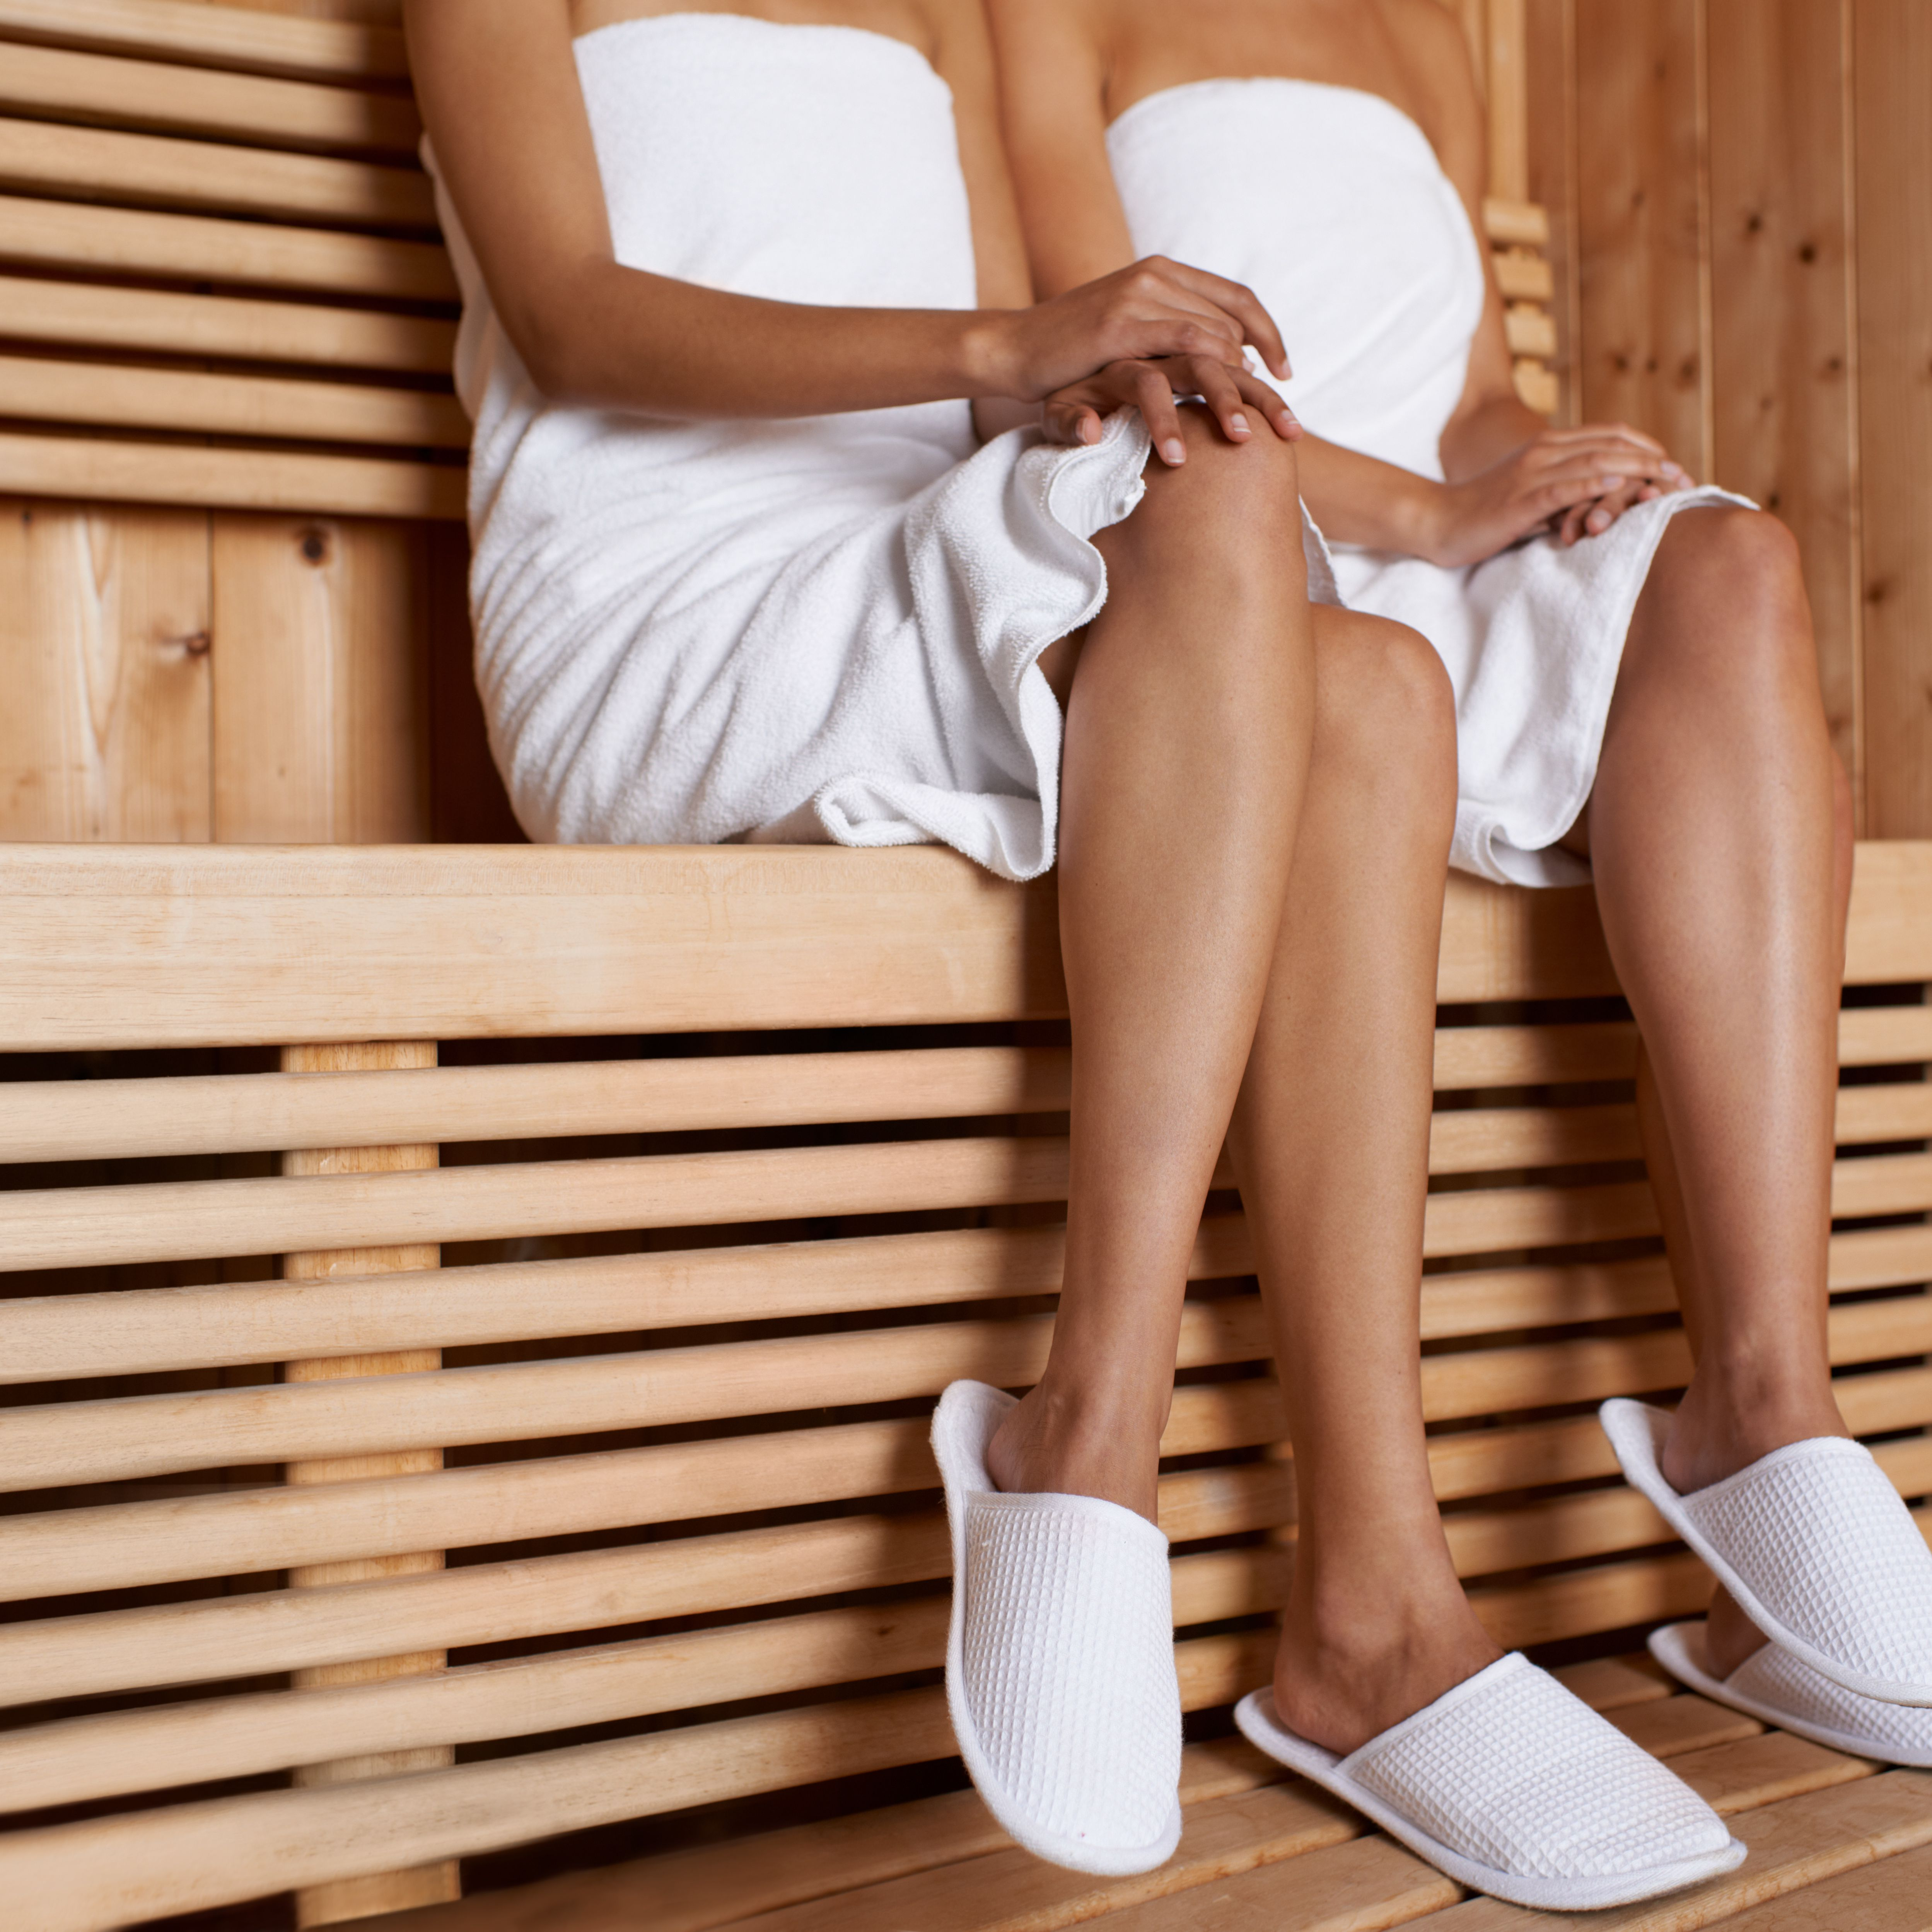 Are Saunas and Steam Rooms Good for Your Health?